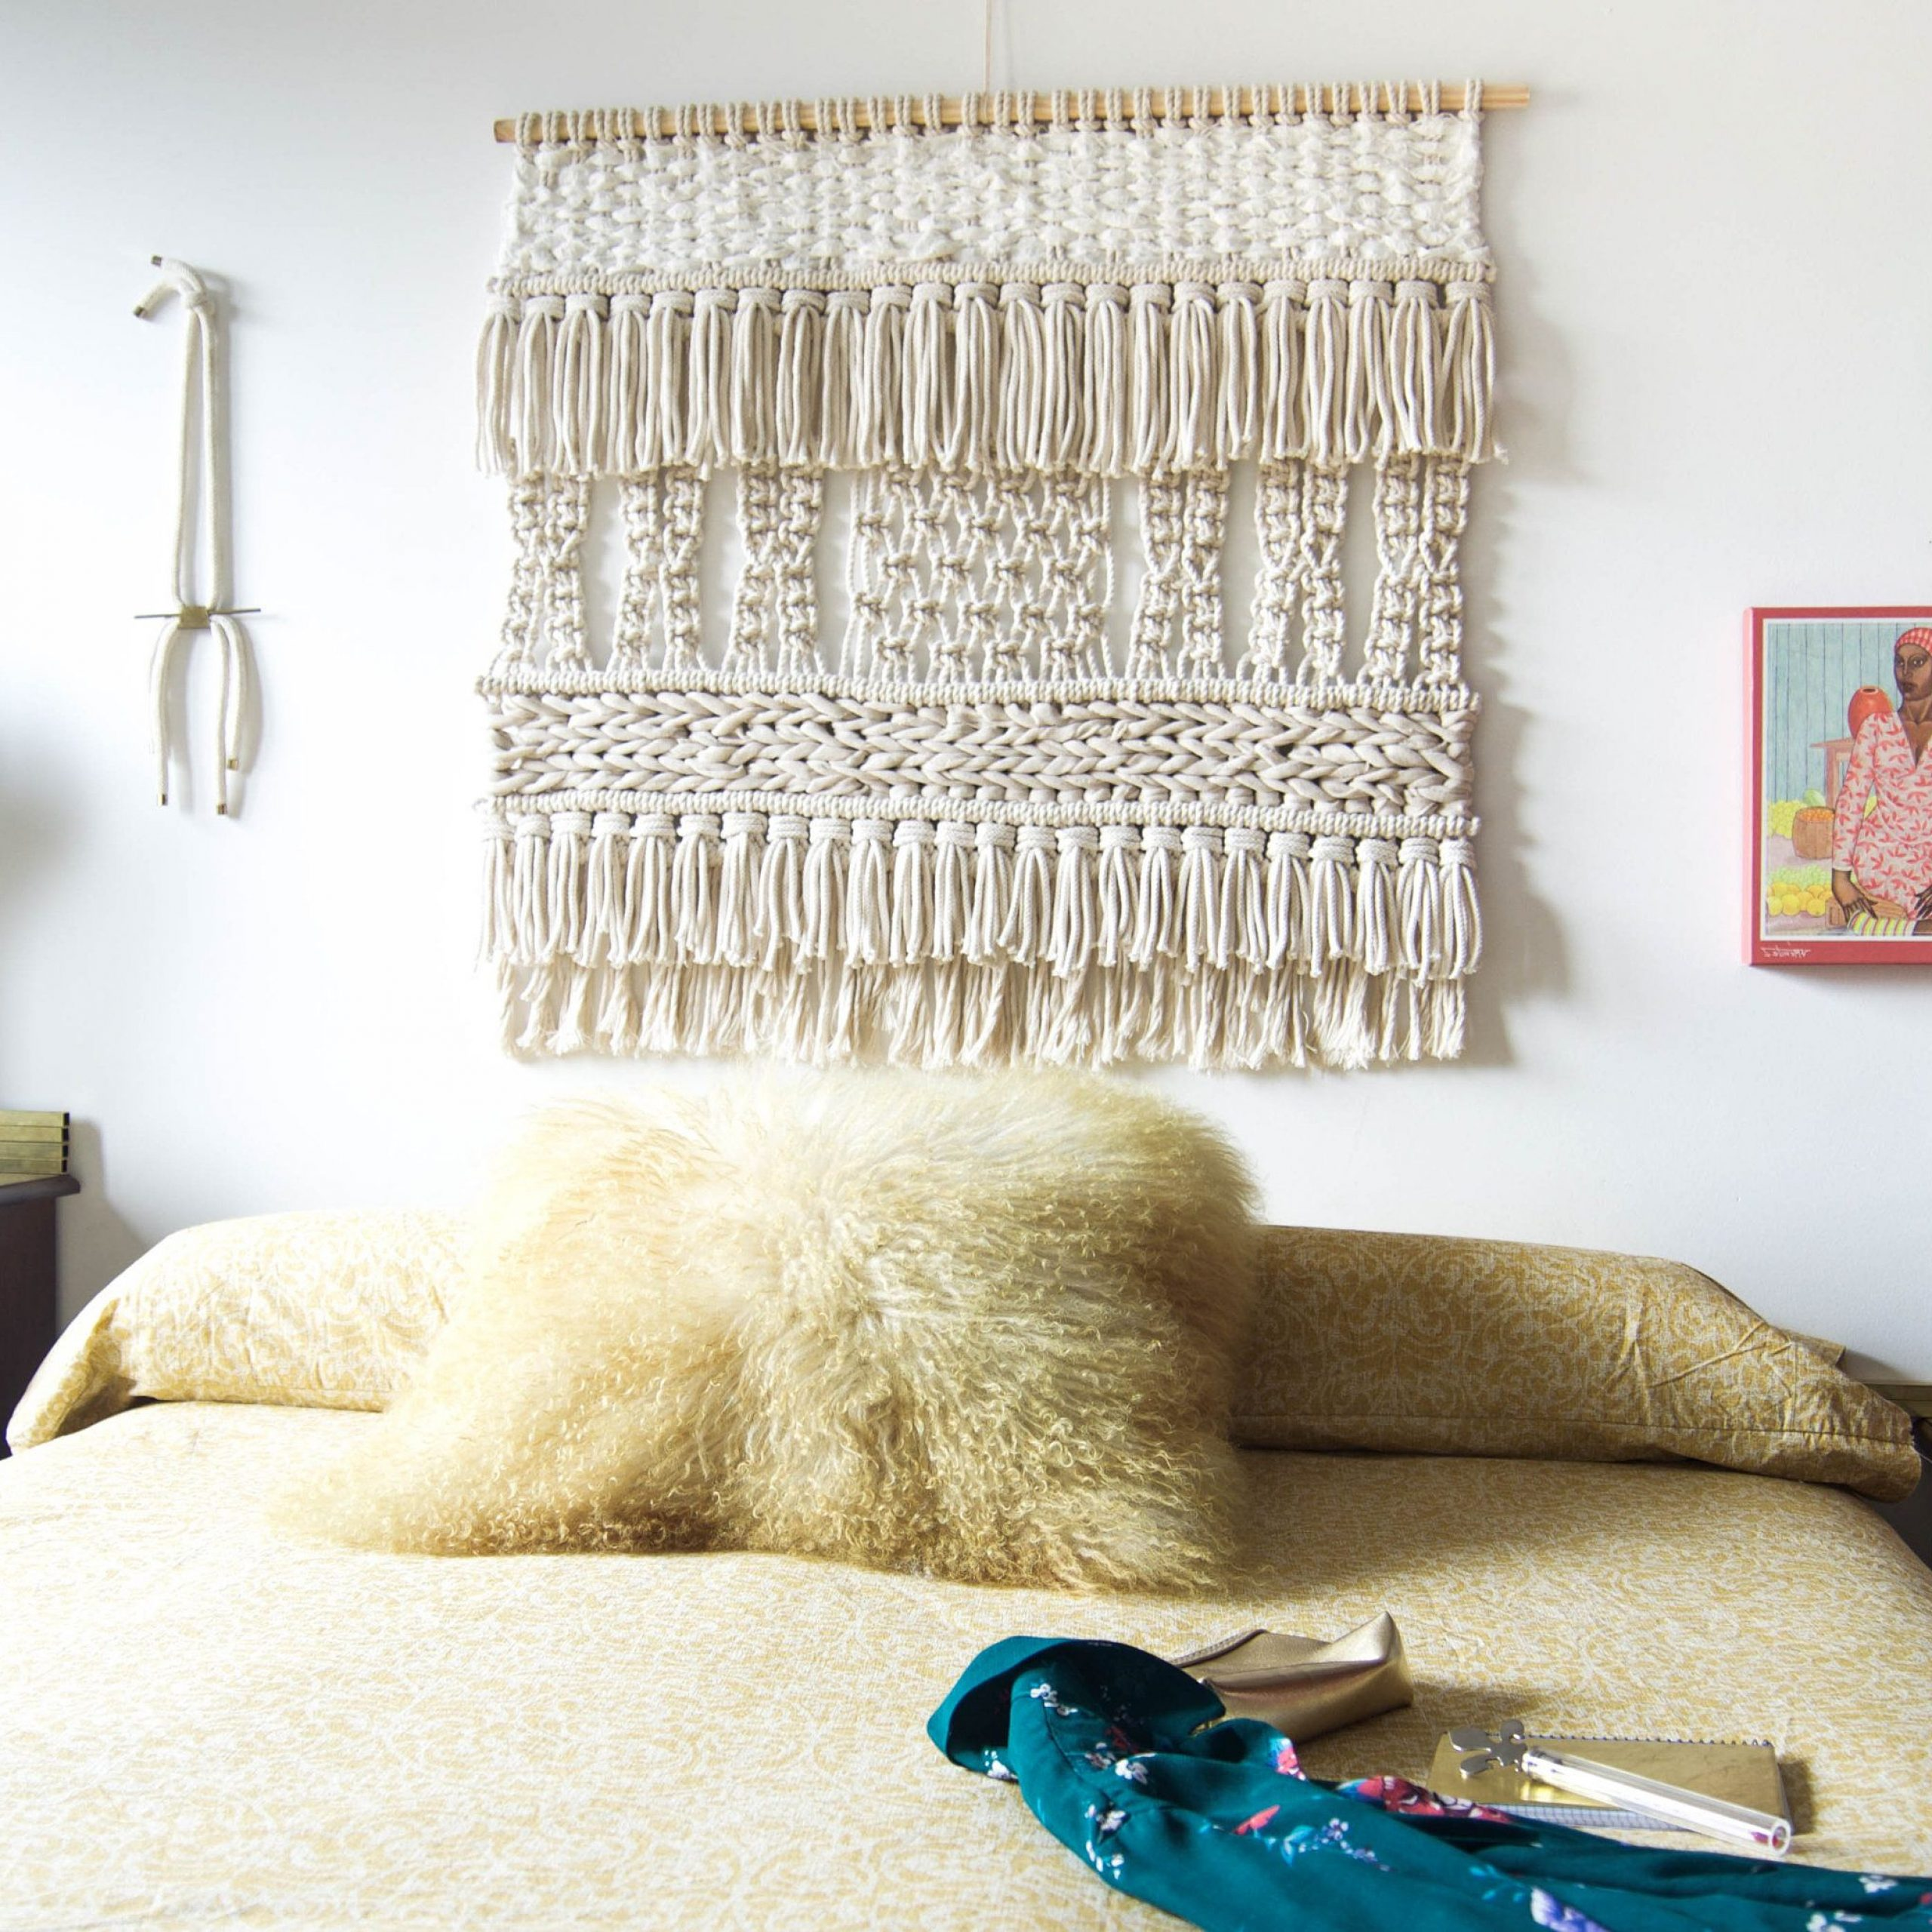 Neutral Tropical Macrame Wall Artranran Design Throughout 2019 Blended Fabric Trust In The Lord Tapestries And Wall Hangings (View 14 of 20)